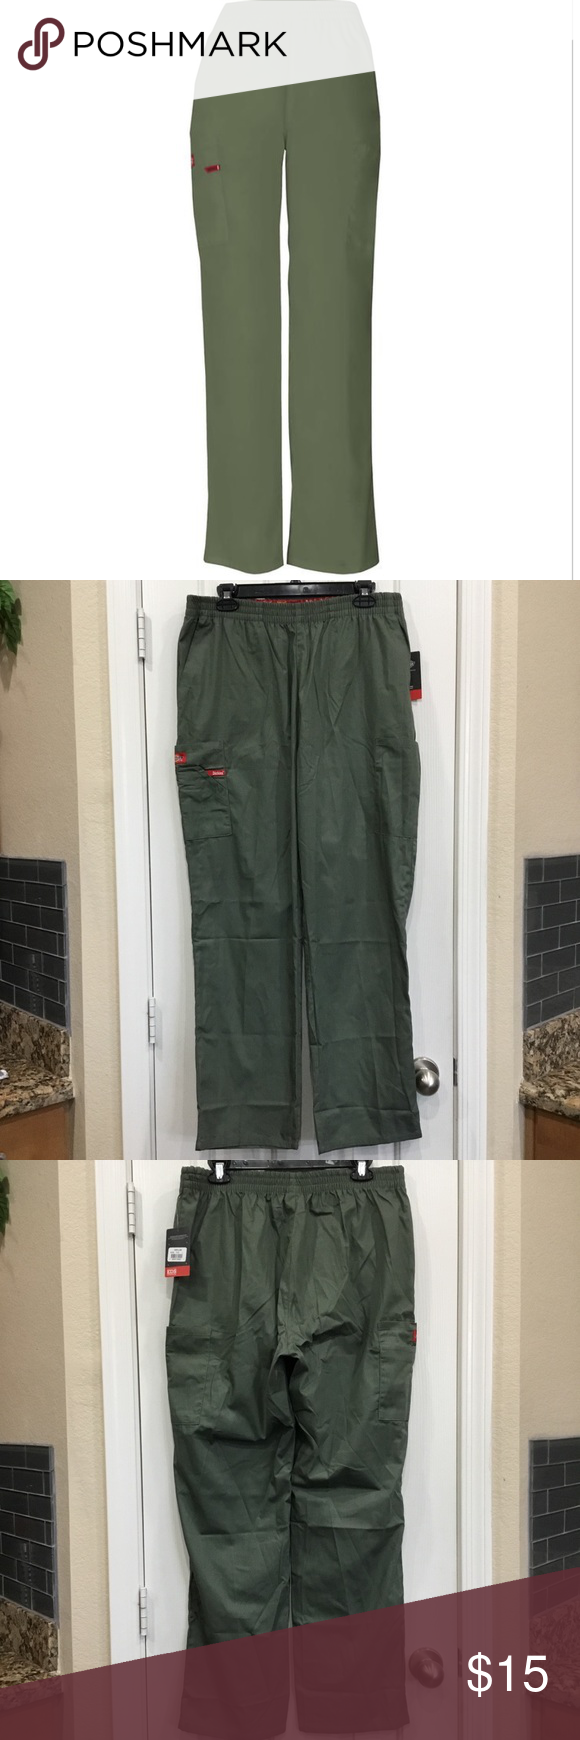 35b603bf16 Dickies Missy Fit Pull-on Cargo Scrub Pants A Missy fit, natural rise,  tapered leg, pull-on pant features an all around elastic waistband with  Dickies logo ...